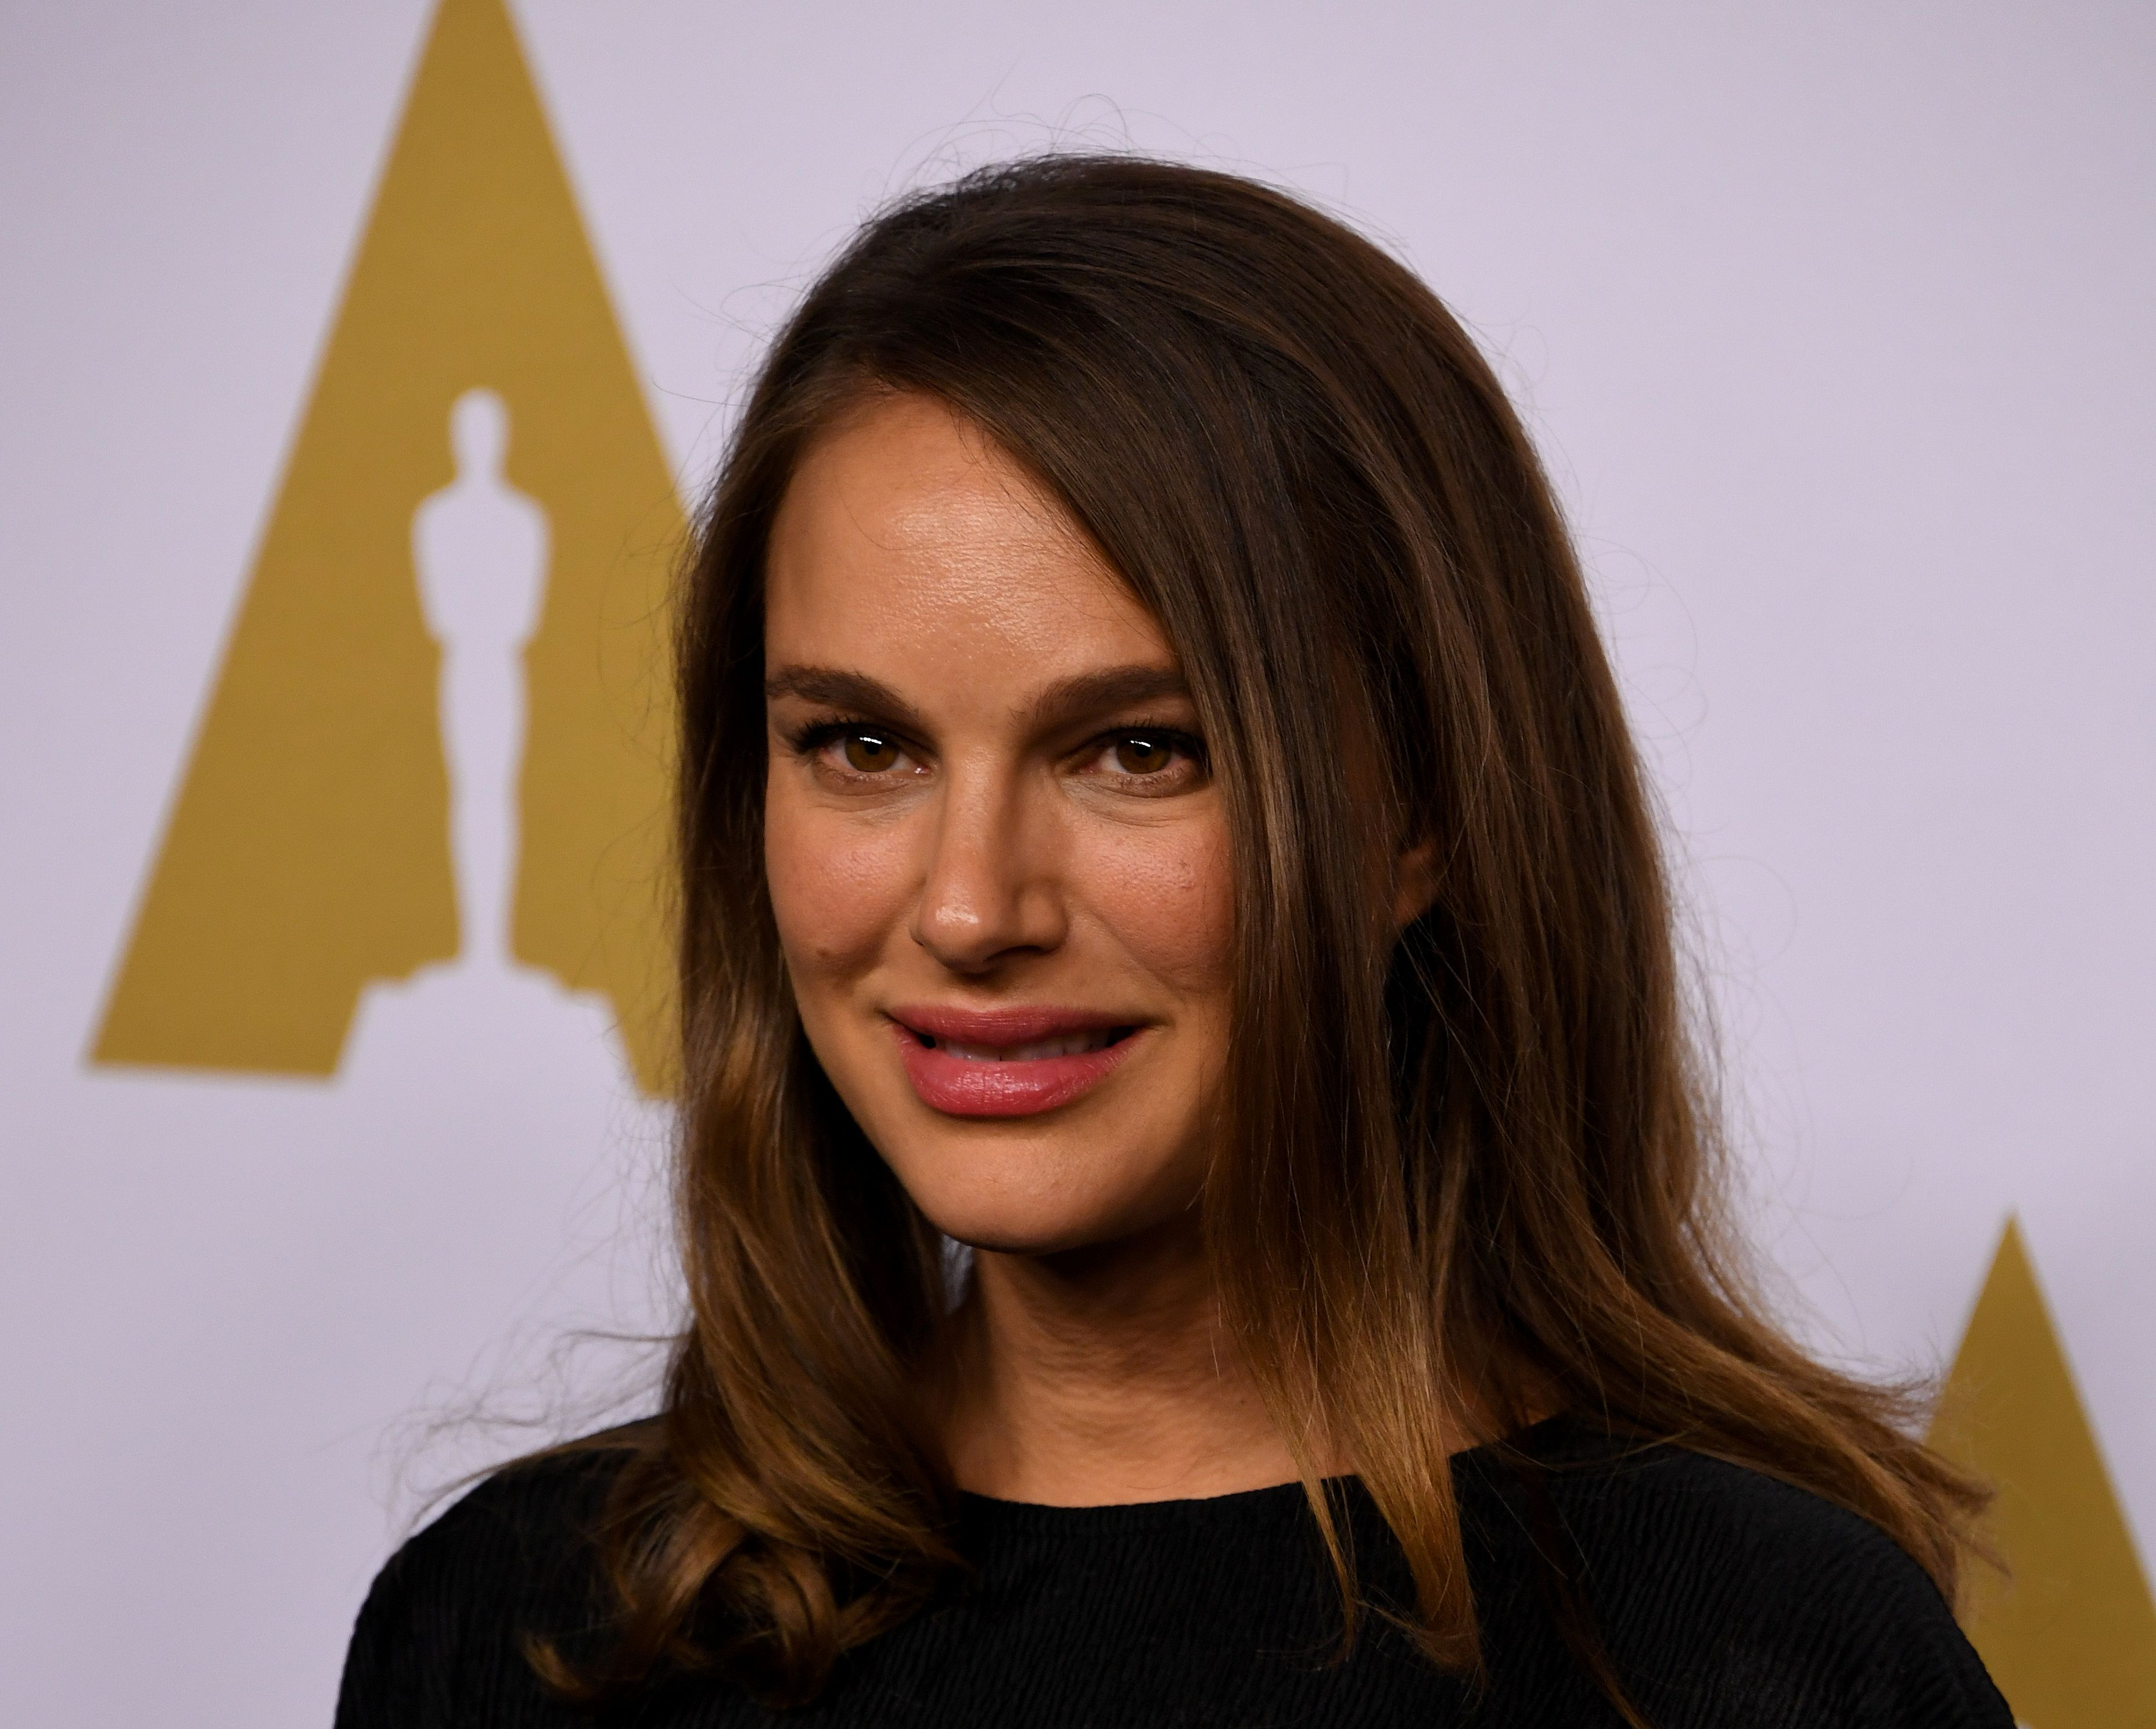 Actress Natalie Portman arrives for the 89th Annual Academy Awards Nominee Luncheon at The Beverly Hilton Hotel in Beverly Hills, California on February 6, 2017. / AFP / Mark RALSTON (Photo credit should read MARK RALSTON/AFP/Getty Images)